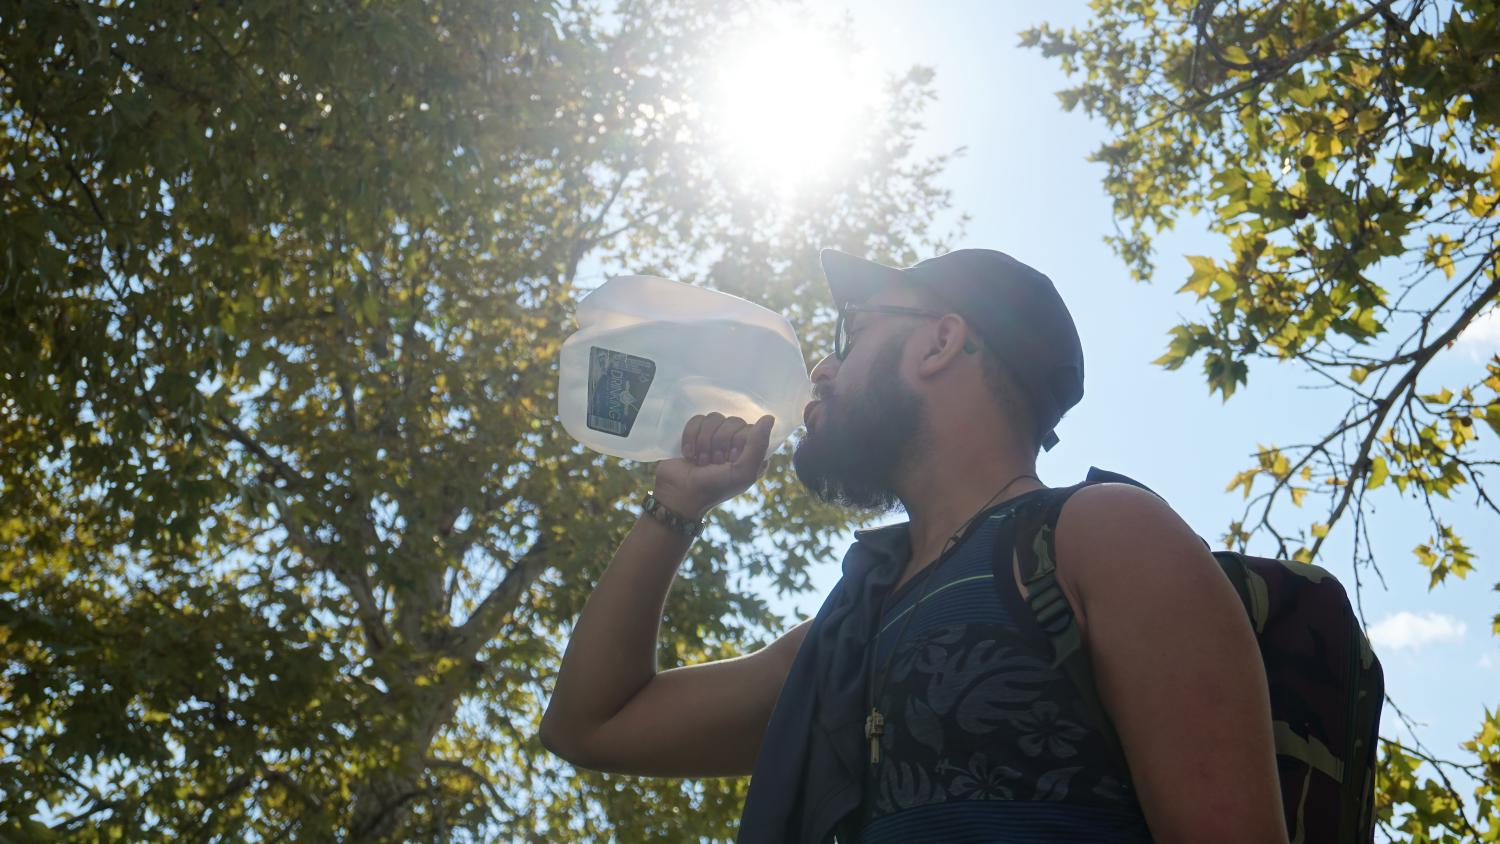 NMSU student trying to stay hydrated in these high tempuratures while walking to class.